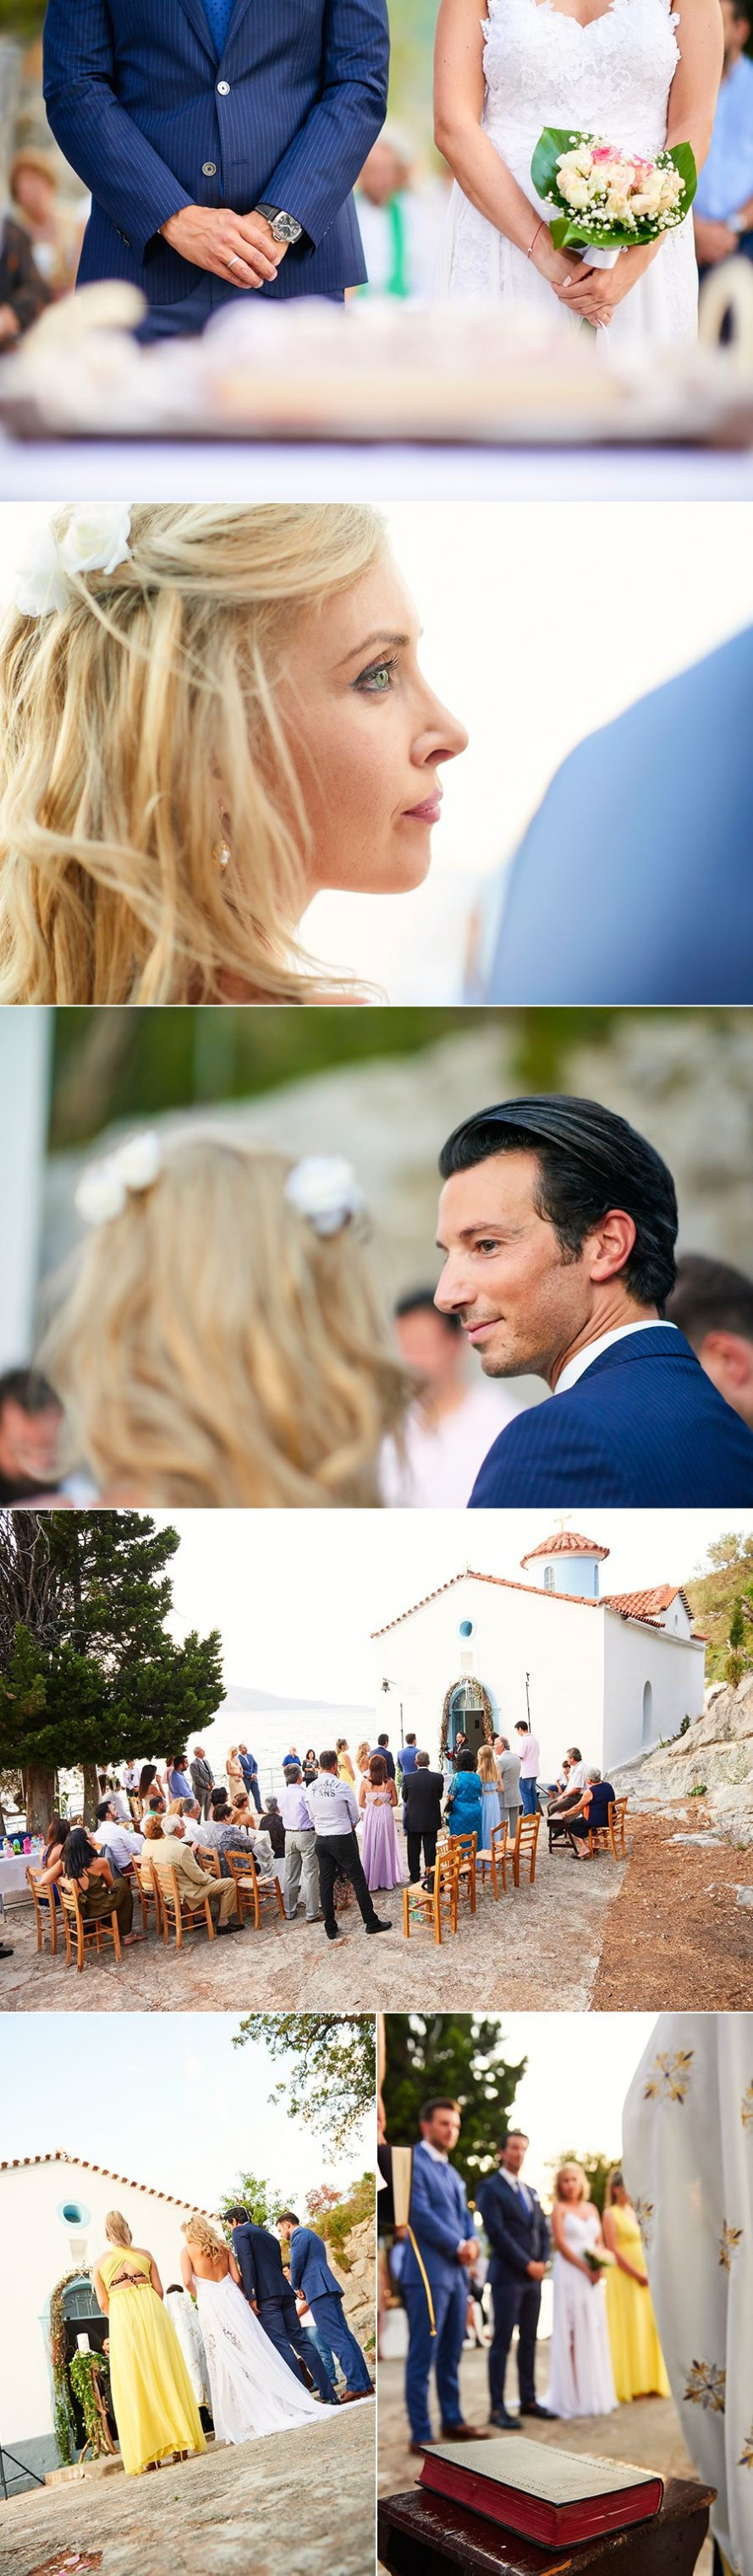 giannis-stella-wedding-photo-09